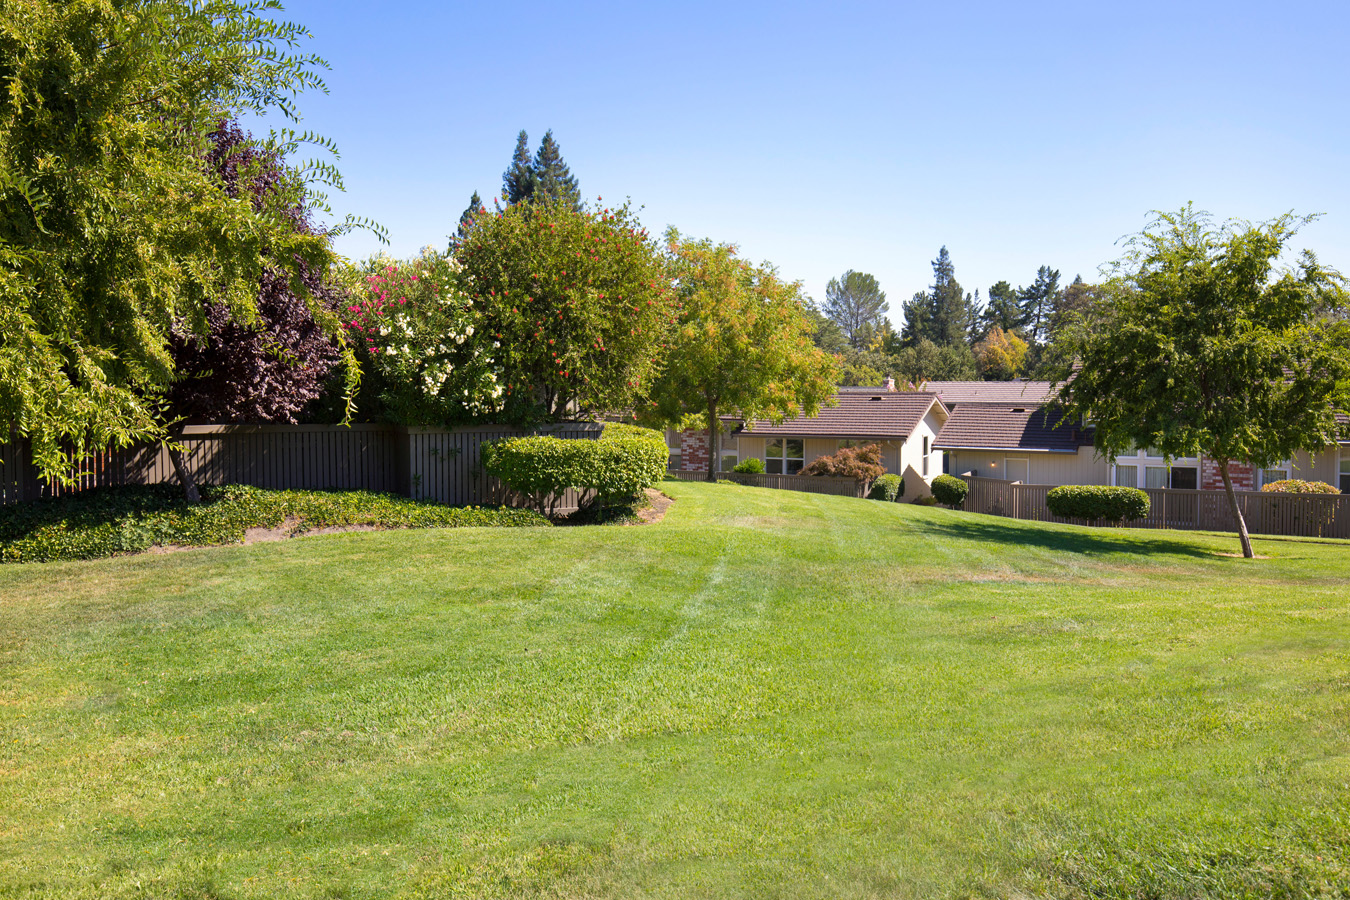 46 Rolling Green Circle, Pleasant Hill, CA 94523